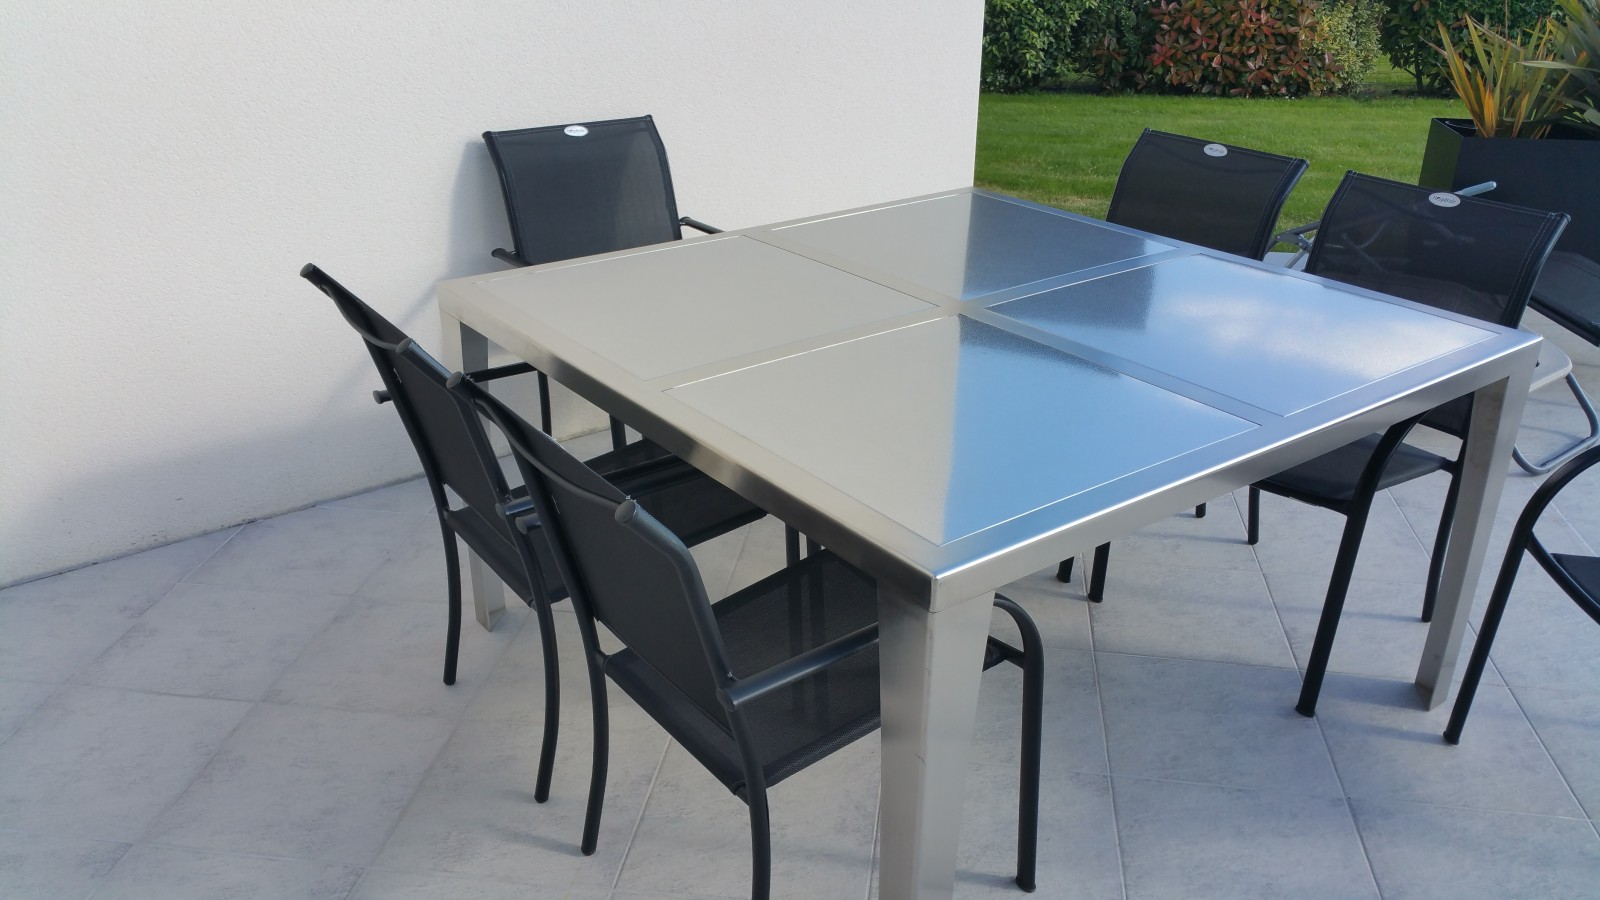 Emejing table de jardin design inox gallery amazing for Table jardin design